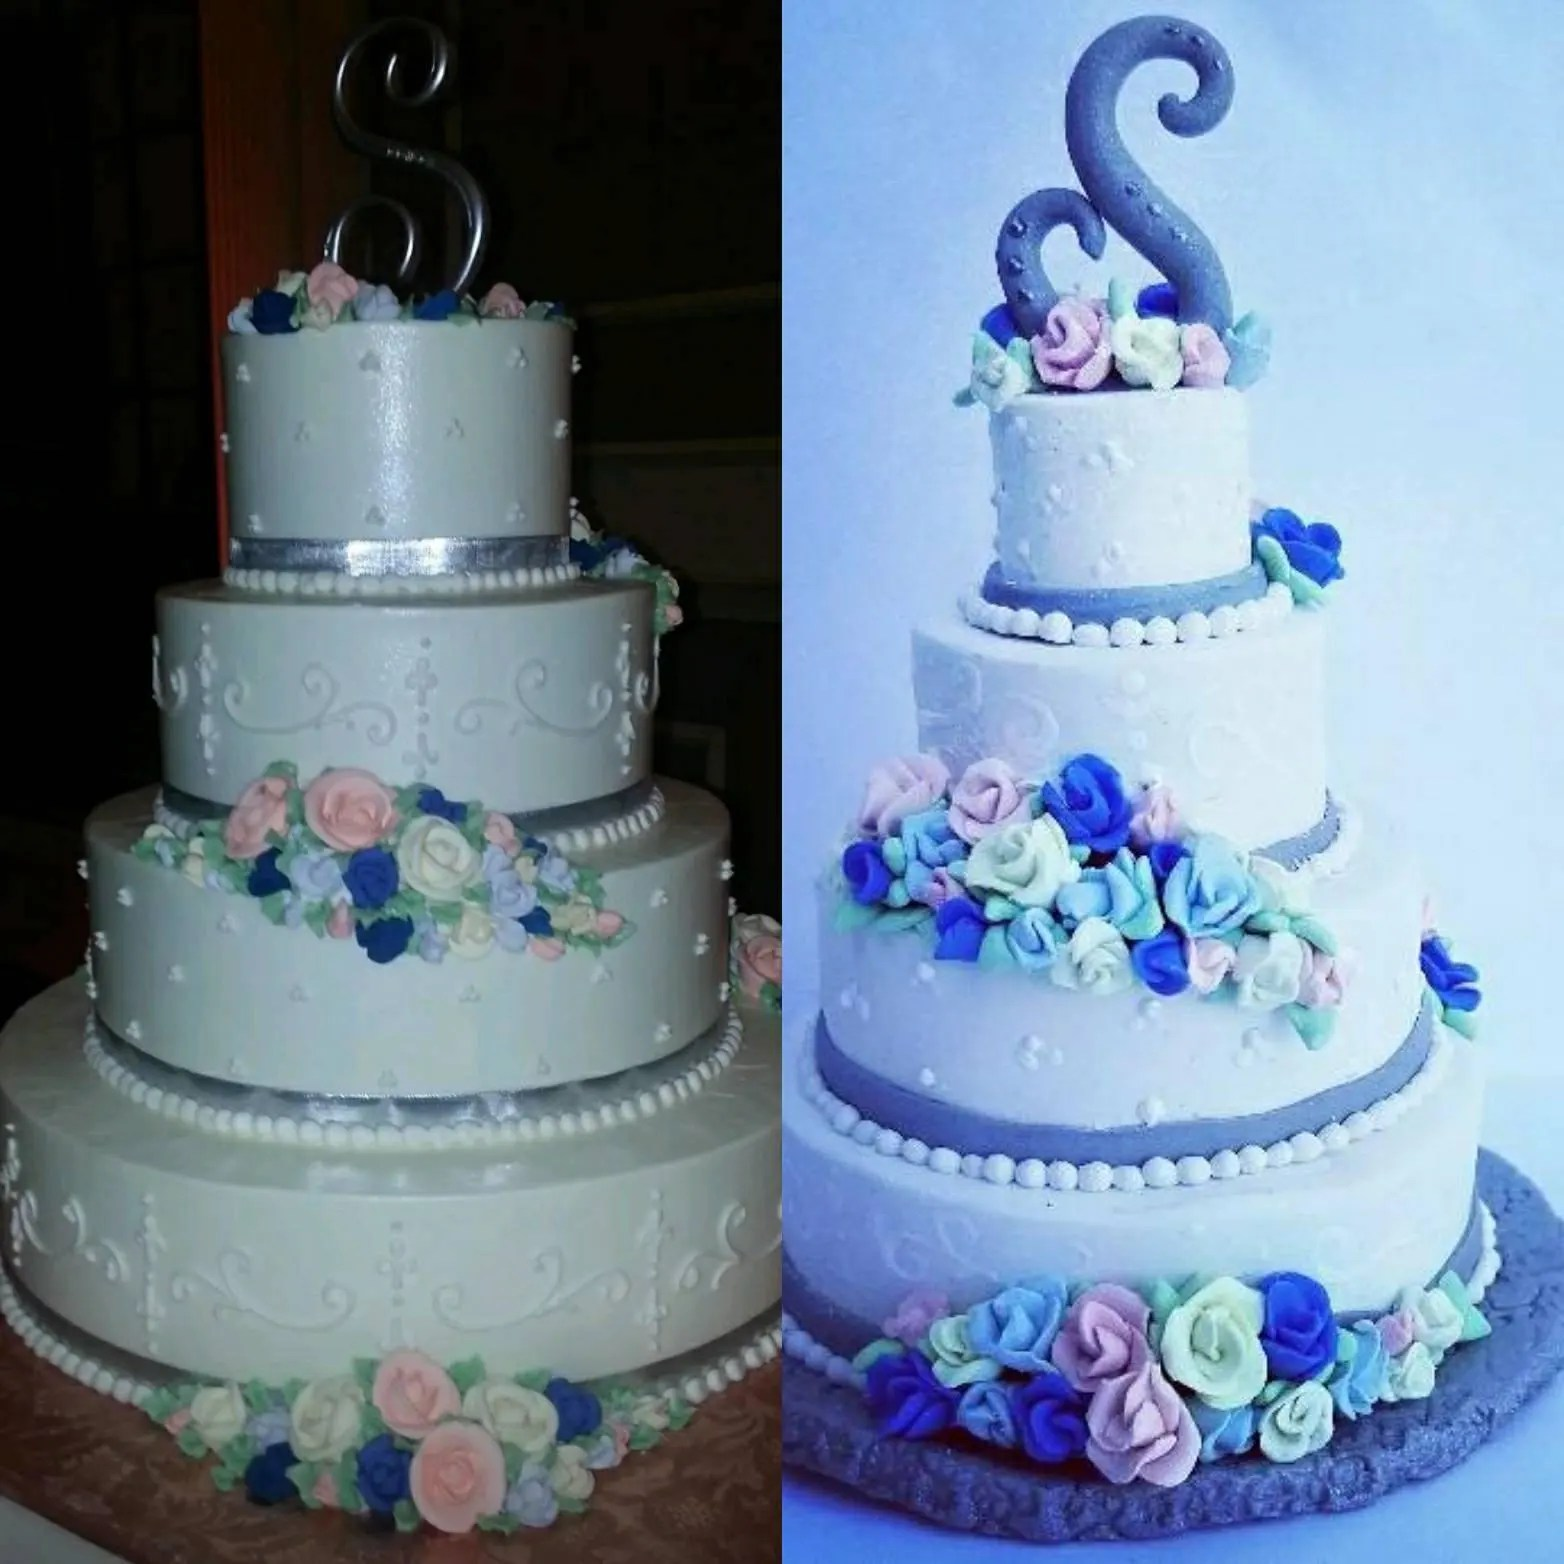 Wedding Cake Replica Ornament custom wedding cake ornament   Etsy